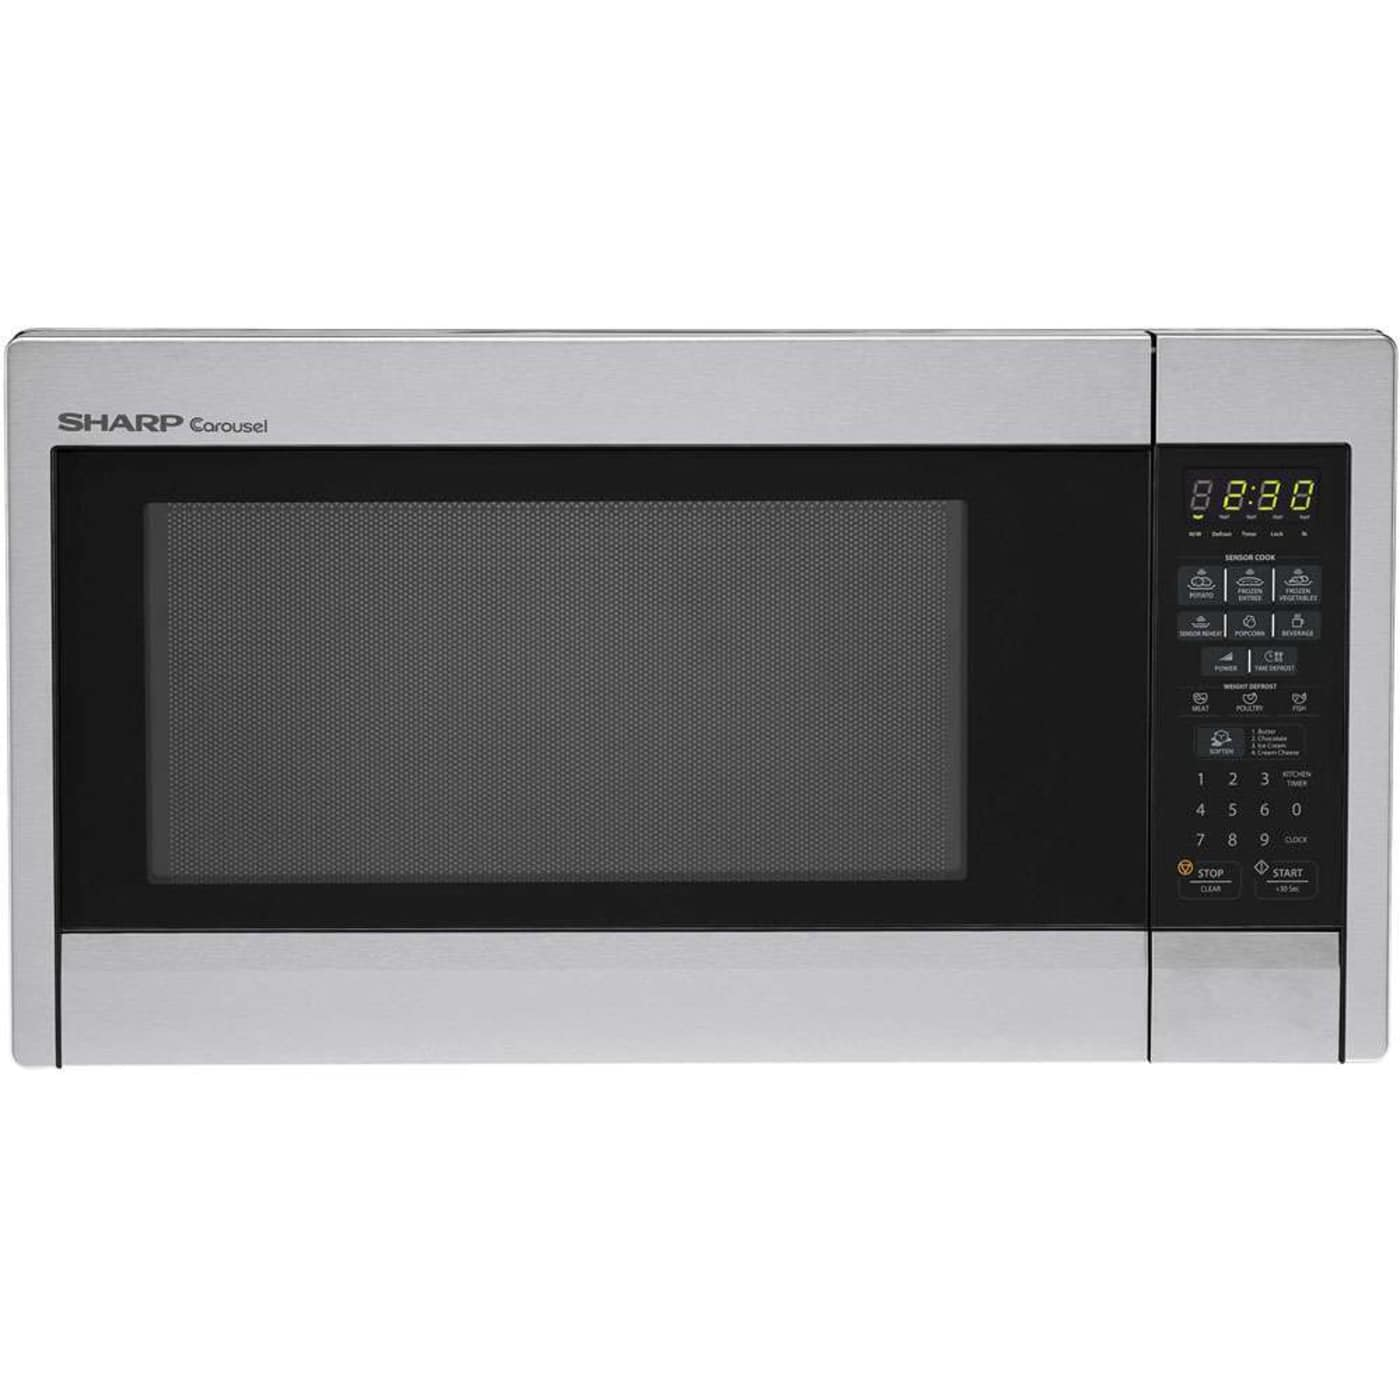 Ft Stainless Steel Countertop Microwave Sharp R451Zs